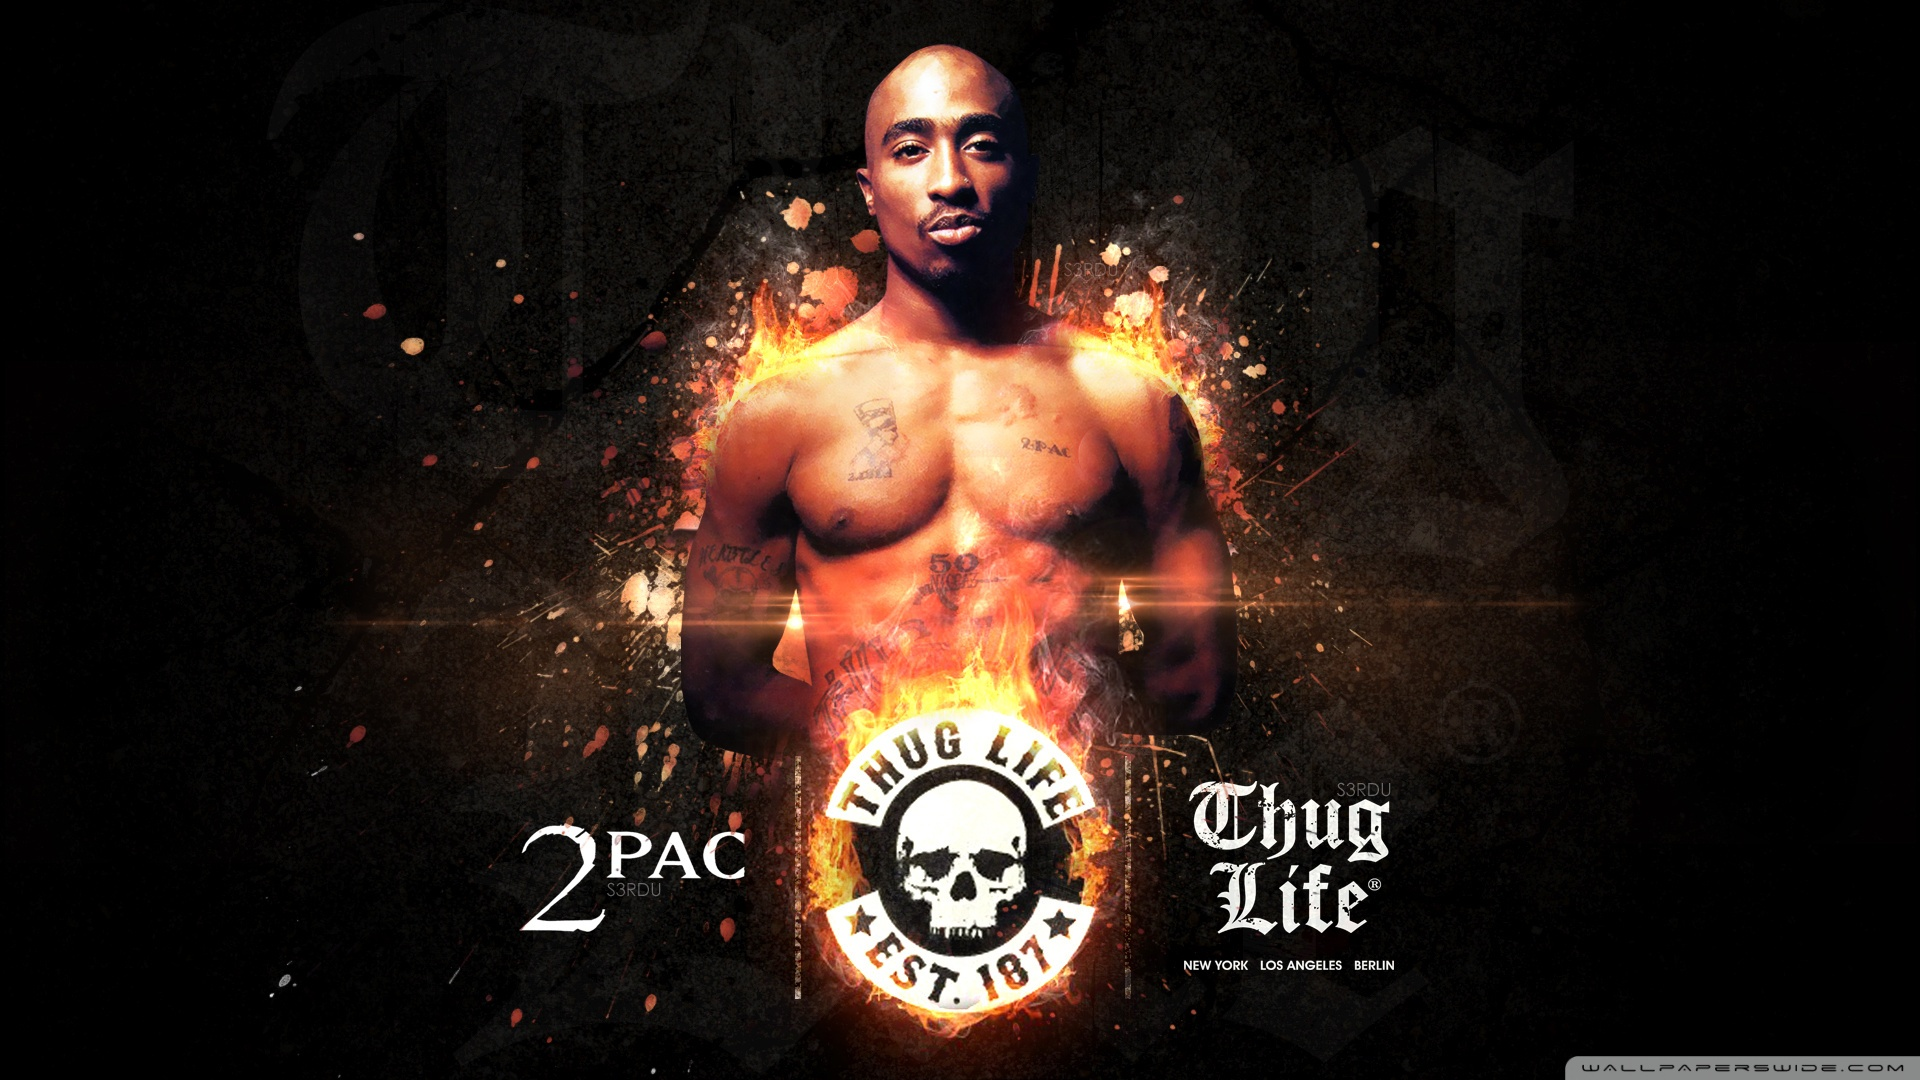 2pac Hd Wallpaper 1920x1080 2pac Hd 1920x1080